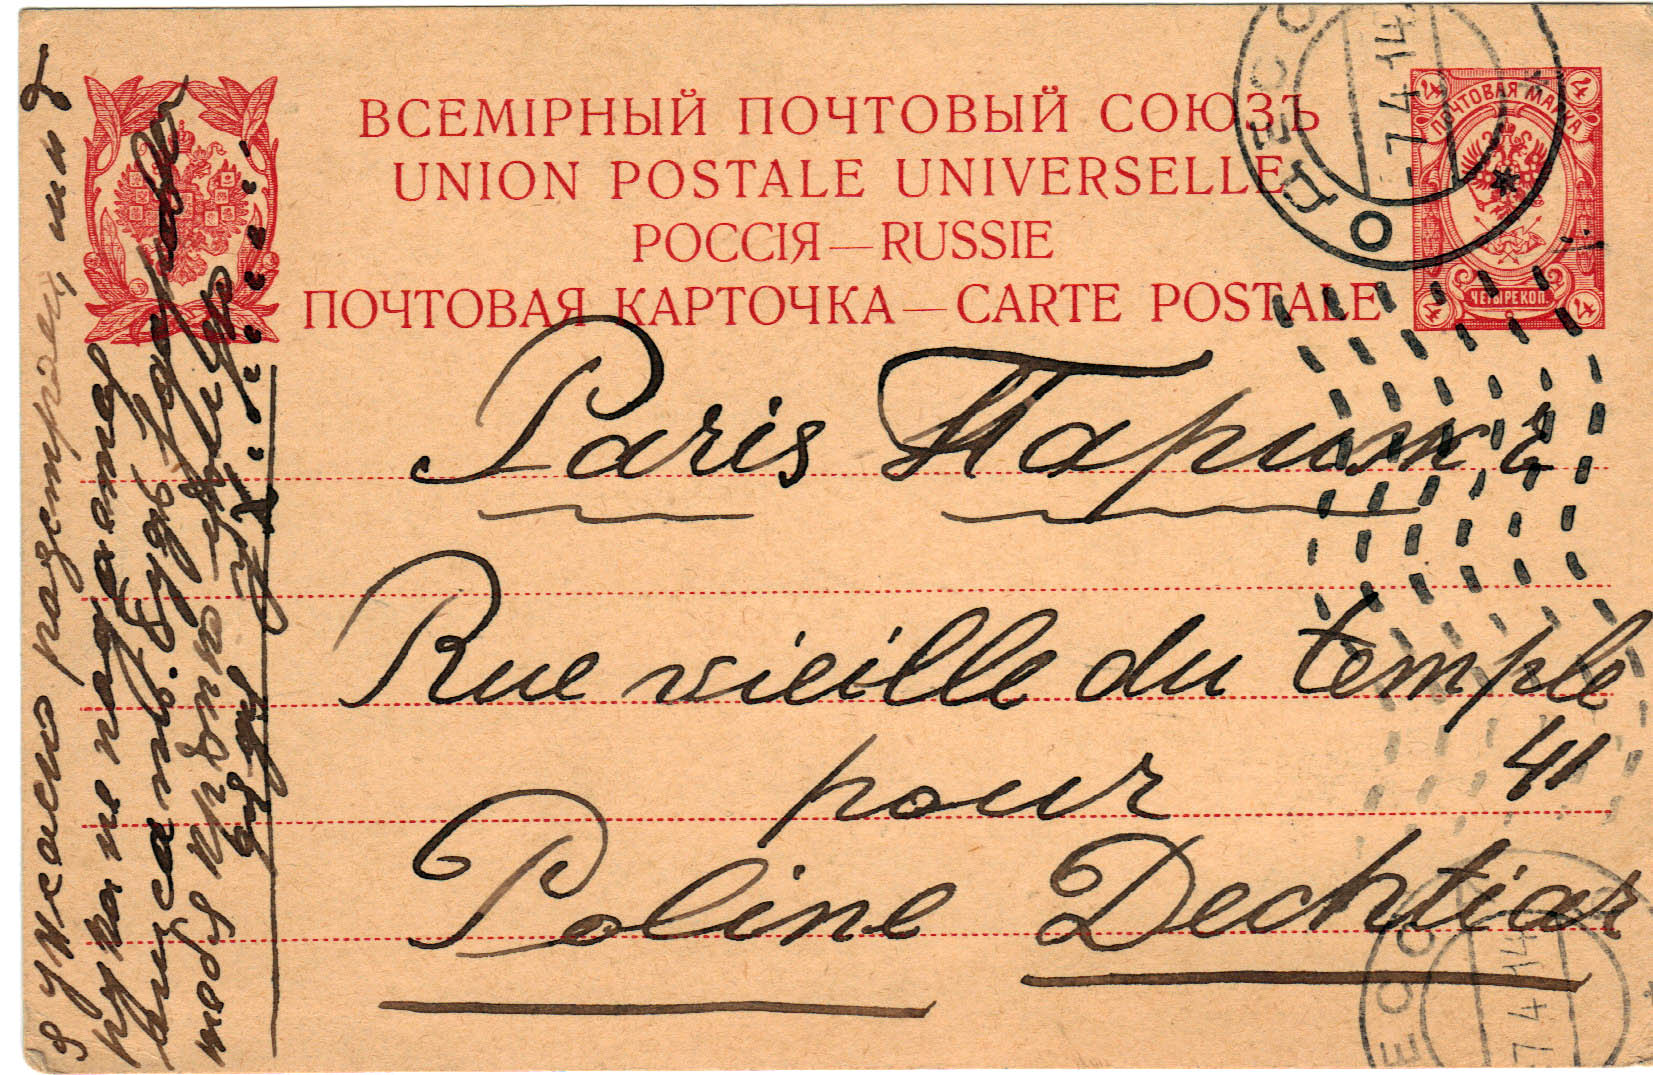 Postcard to Poline from Aron Arpil 7, 1914 Odessa A